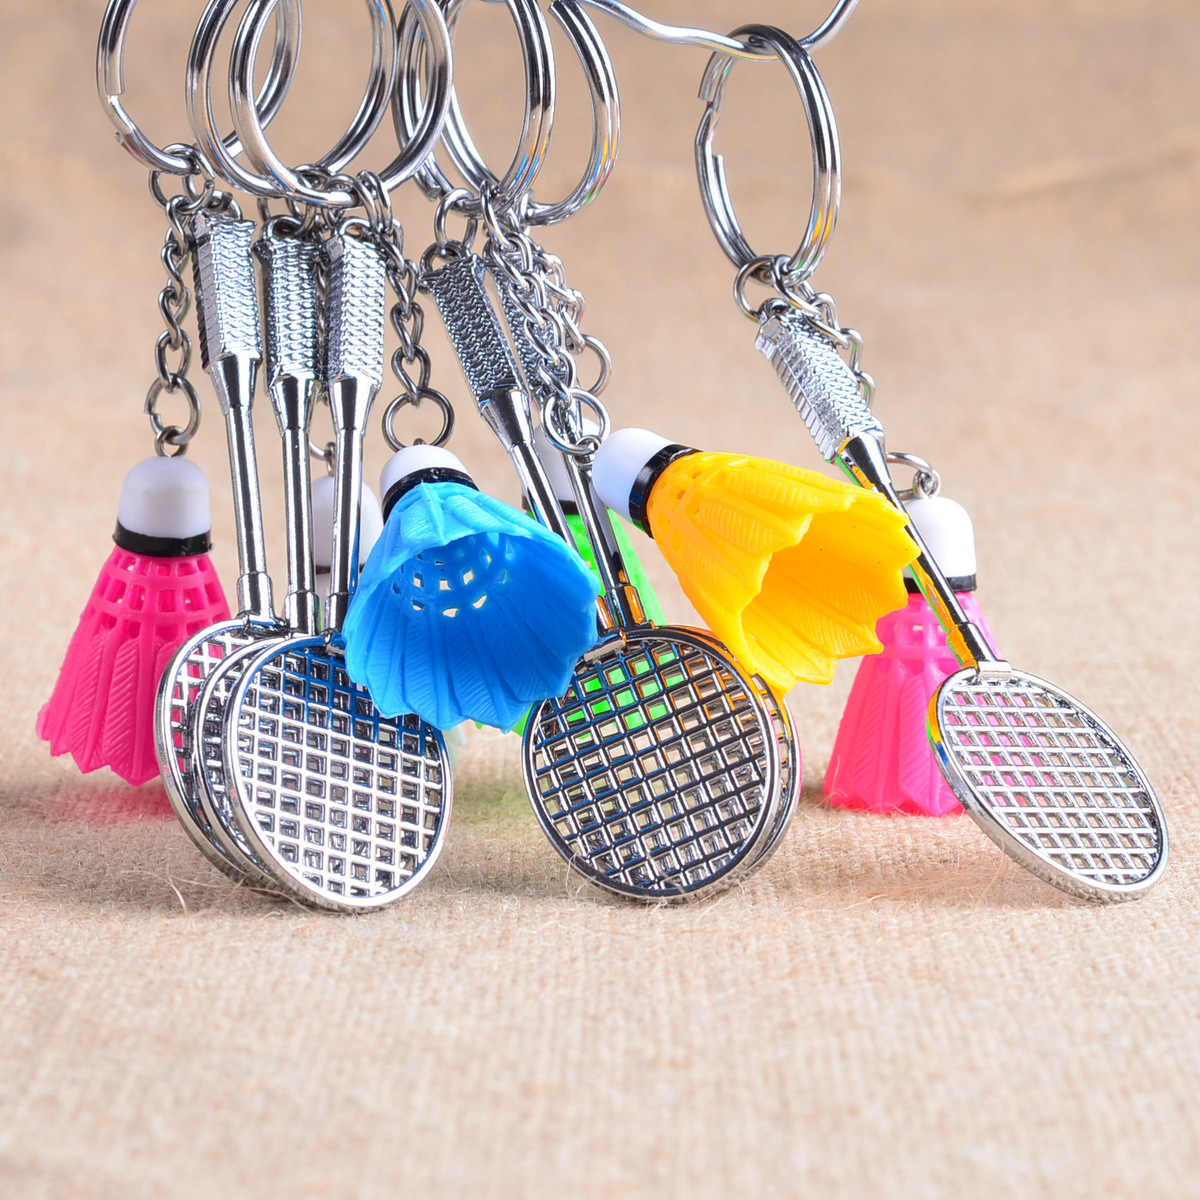 Mini Metal Badminton Racket Key Ring Souvenir Cute Badminton Racquet Ball Key-chain Sports Chain Gift 5 Colors L753OLE